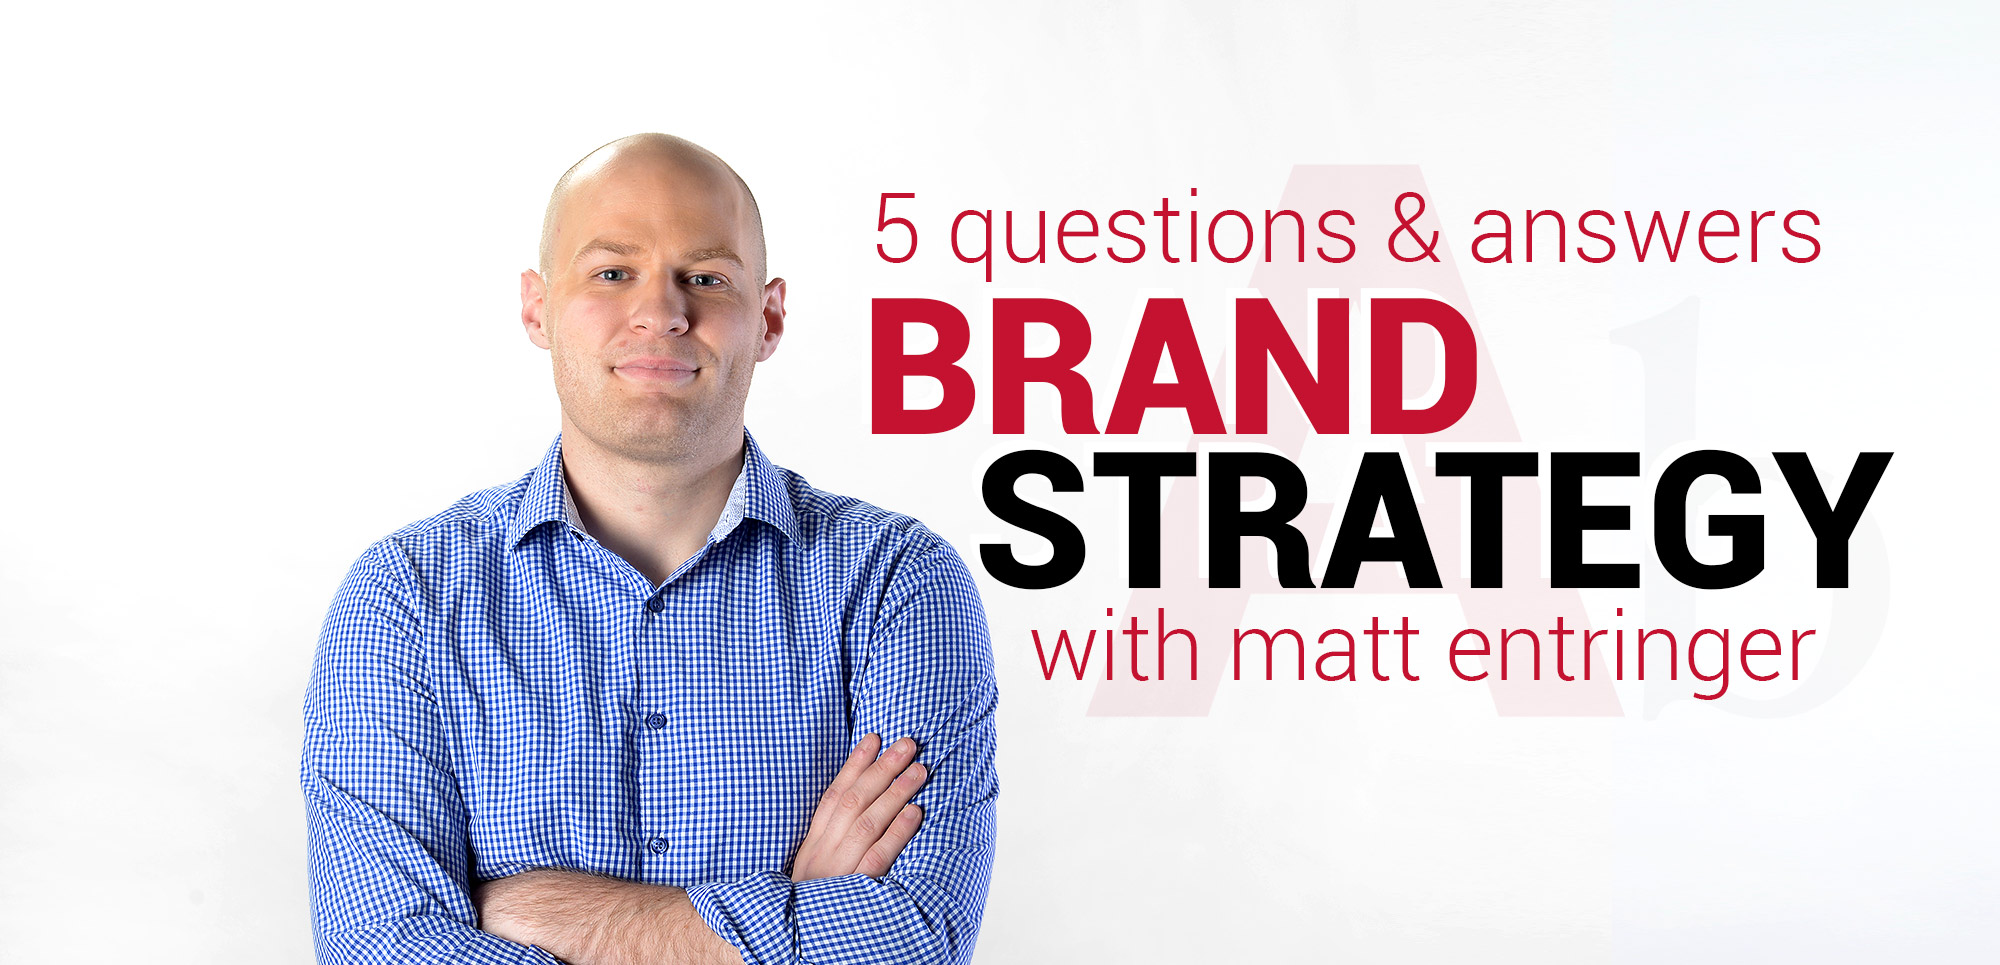 5 questions & answers brand strategy with Matt Entringer